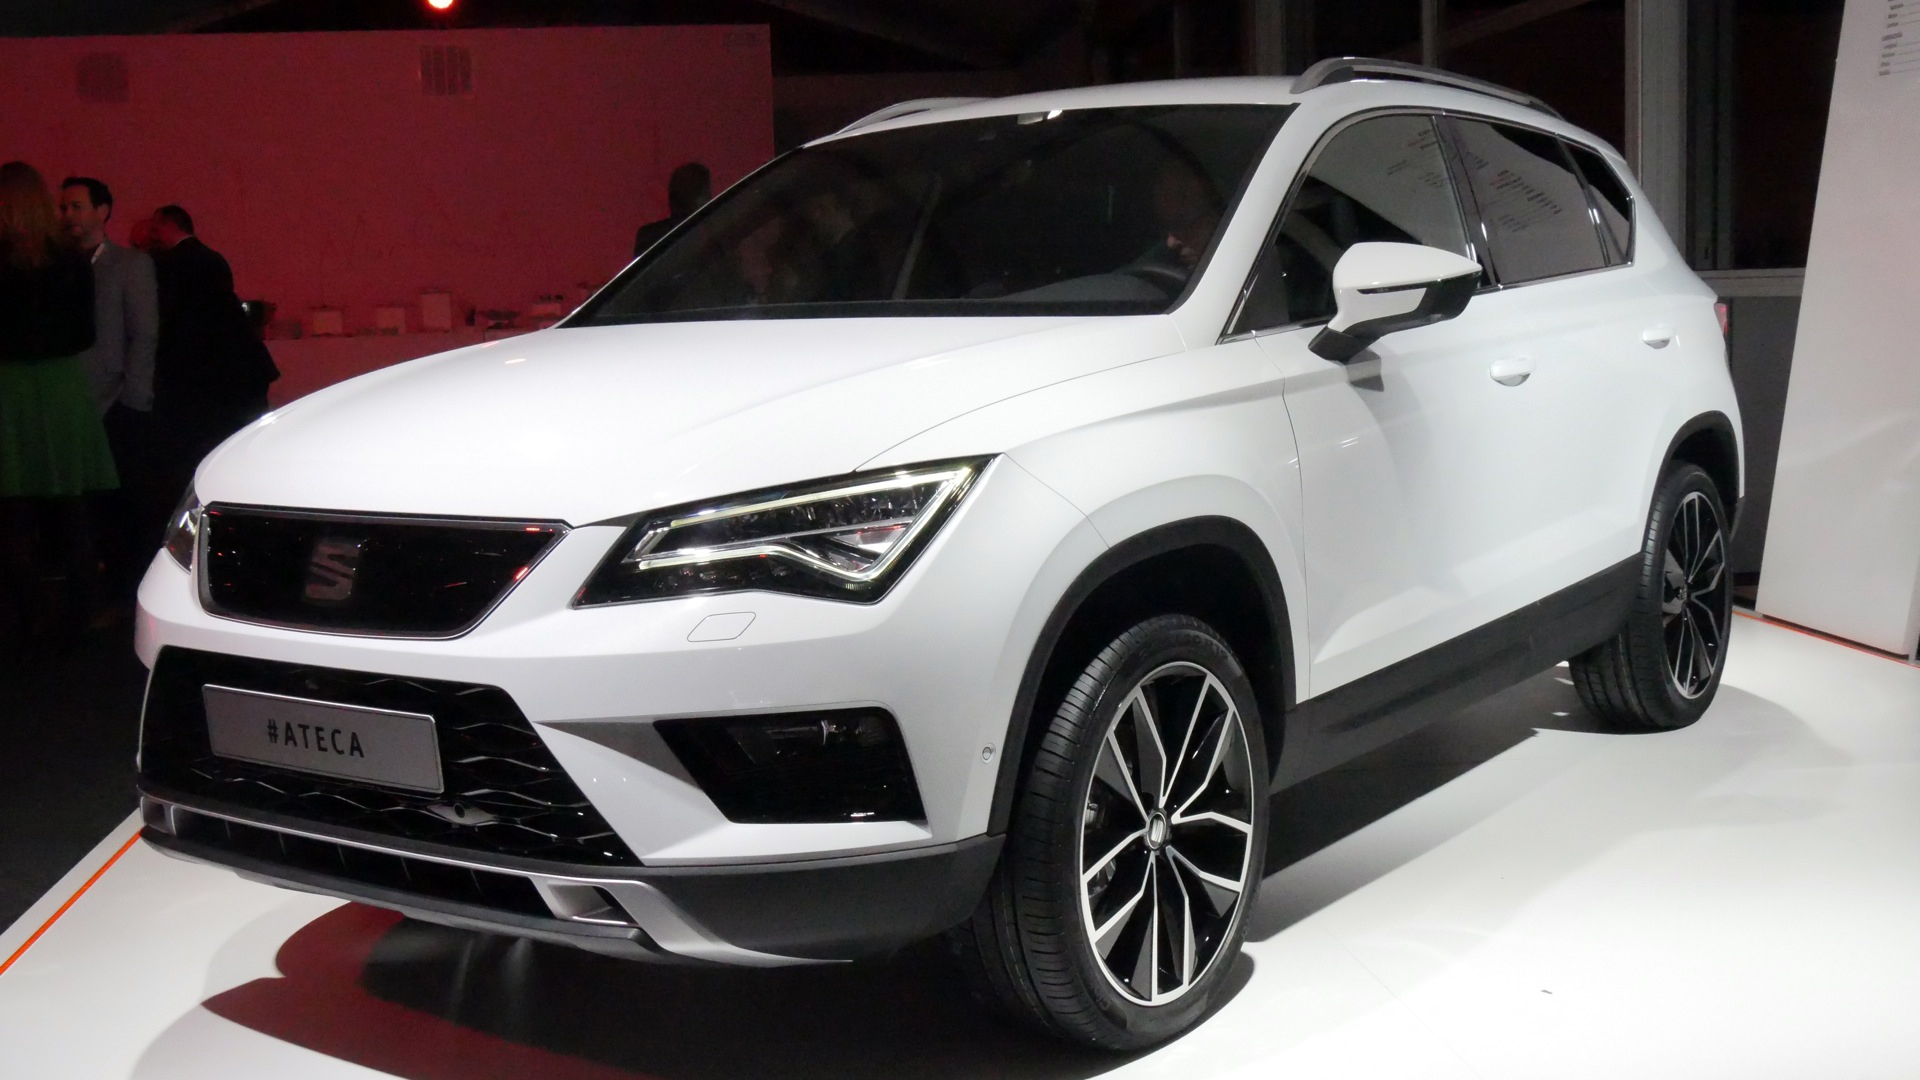 Salon de gen ve 2016 seat ateca le suv qui a mang de for Salon de la photo 2016